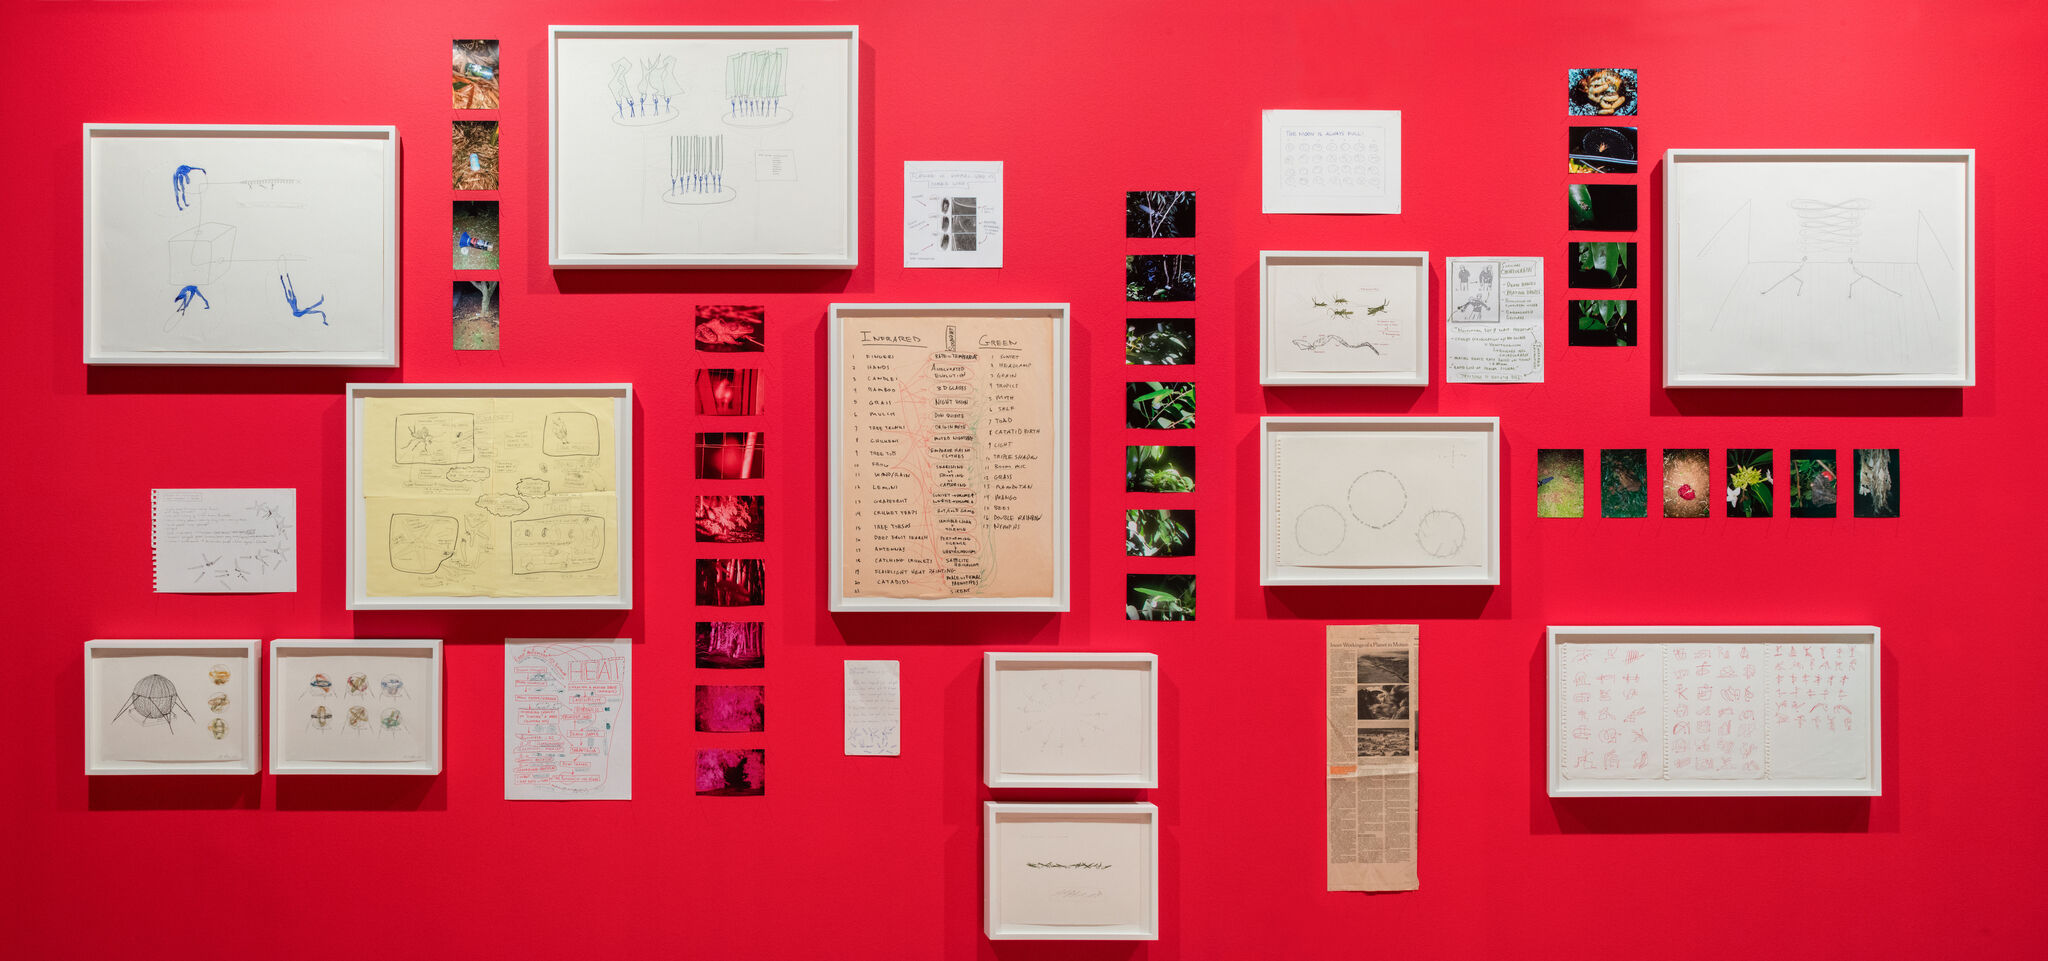 A red wall with framed pieces from the Madeline Hollander exhibition.